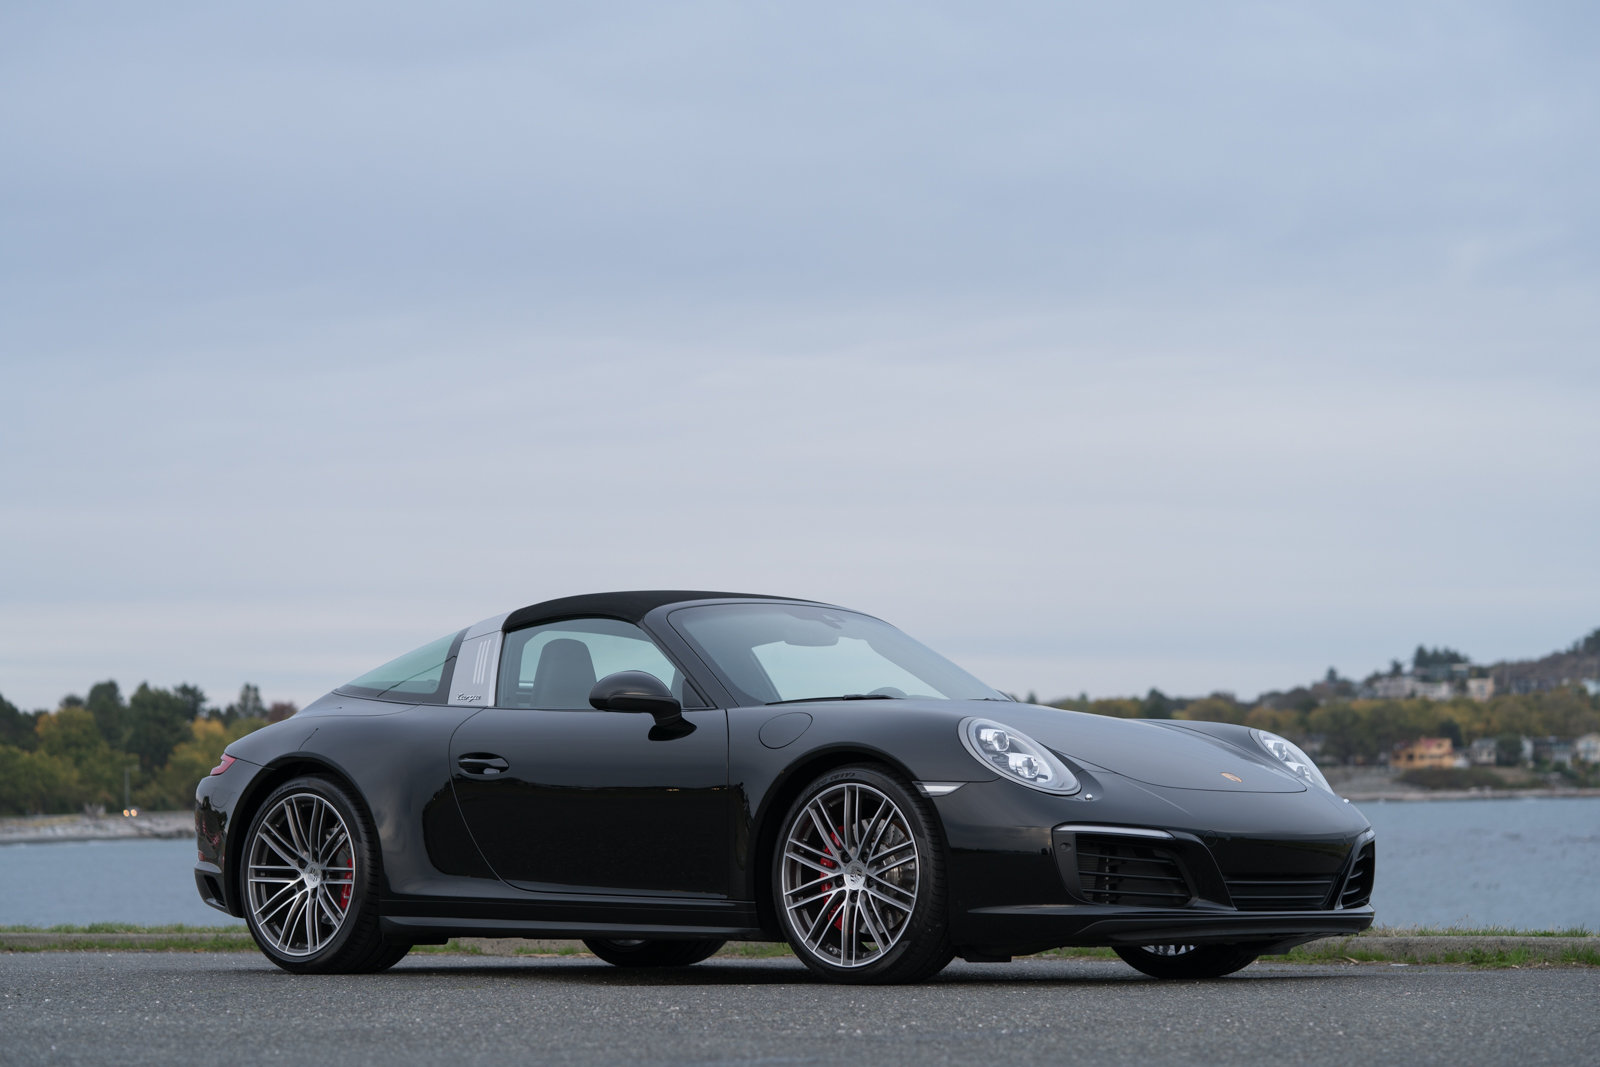 2017 Porsche 911 Targa 4s For Sale In Victoria Bc Silver Arrow Cars